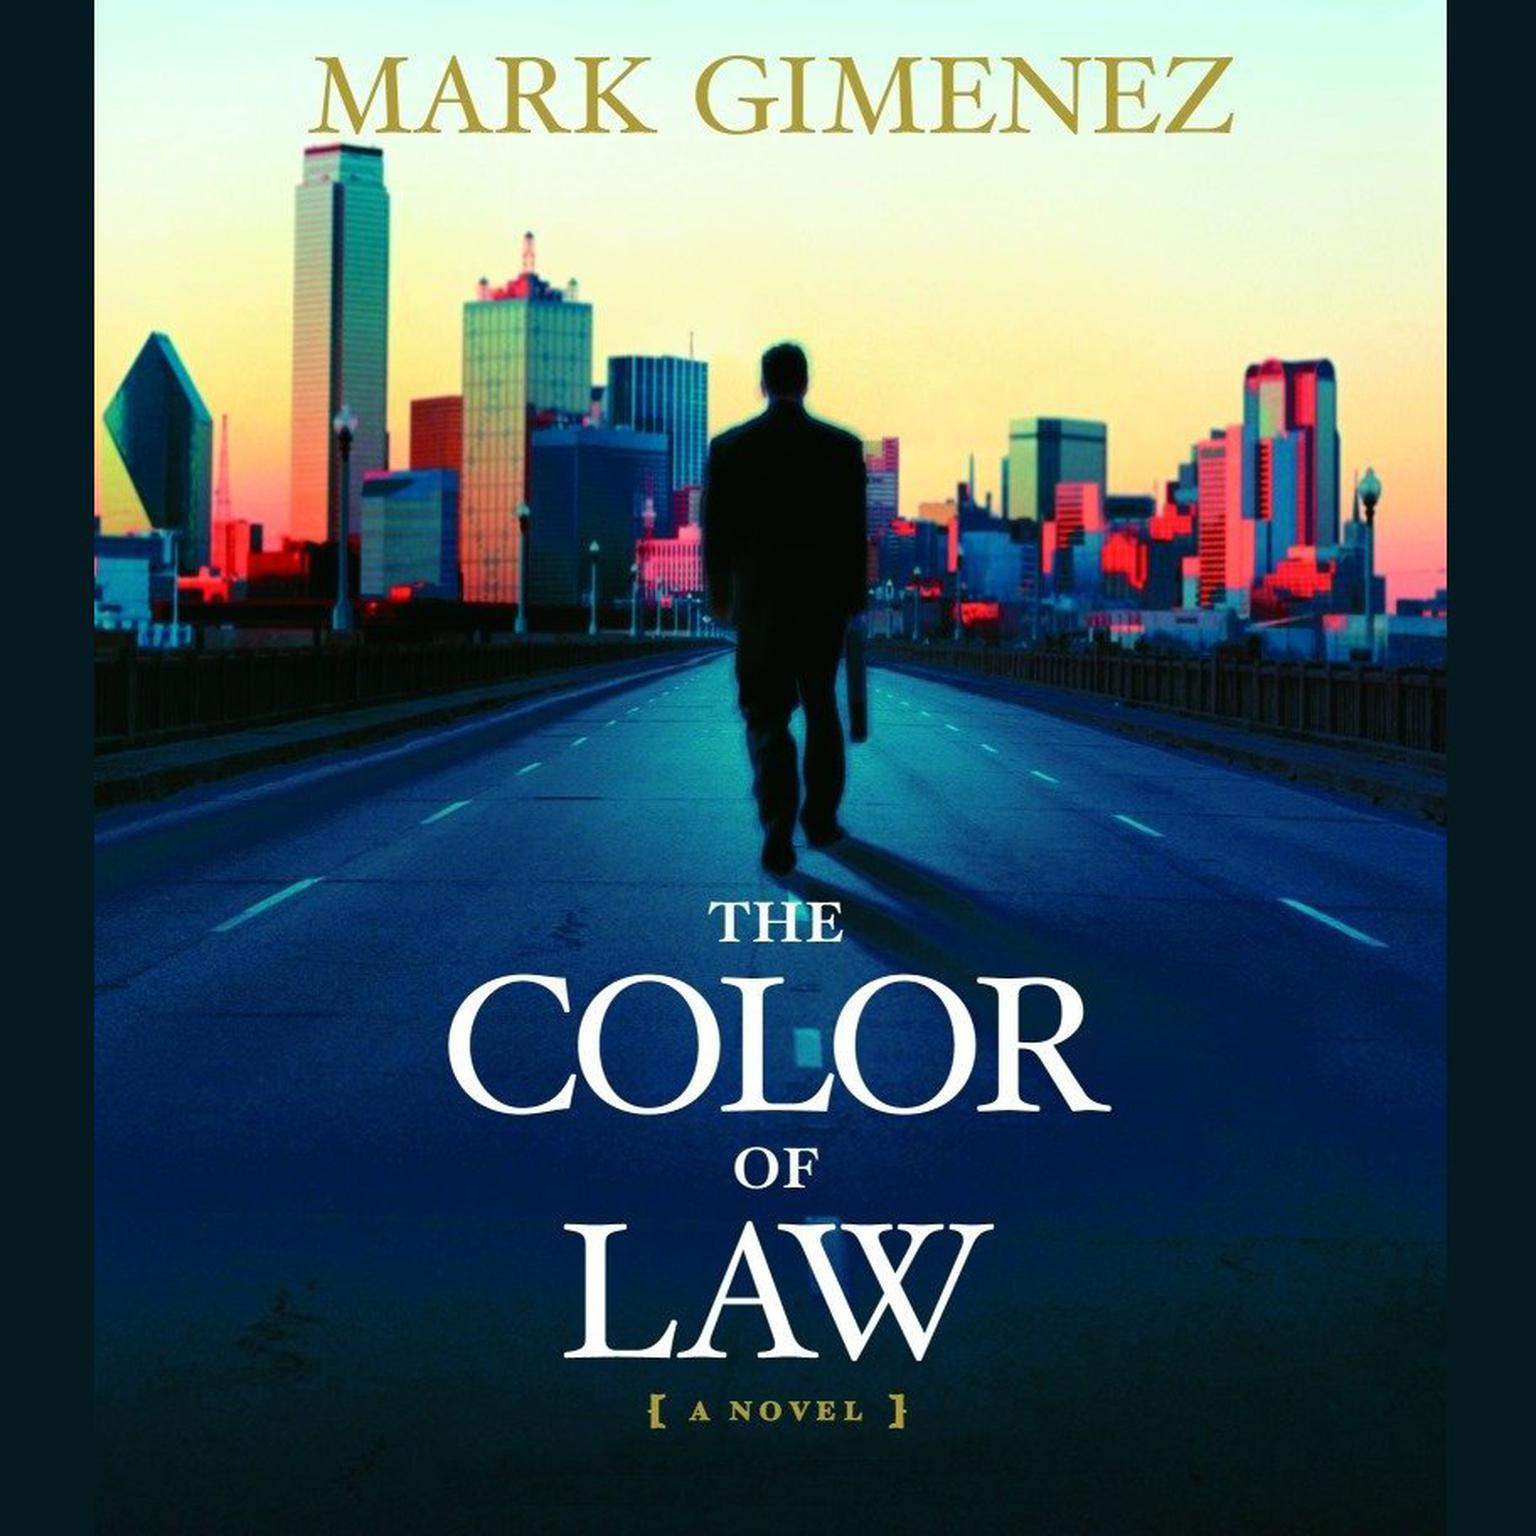 Printable The Color of Law: A Novel Audiobook Cover Art